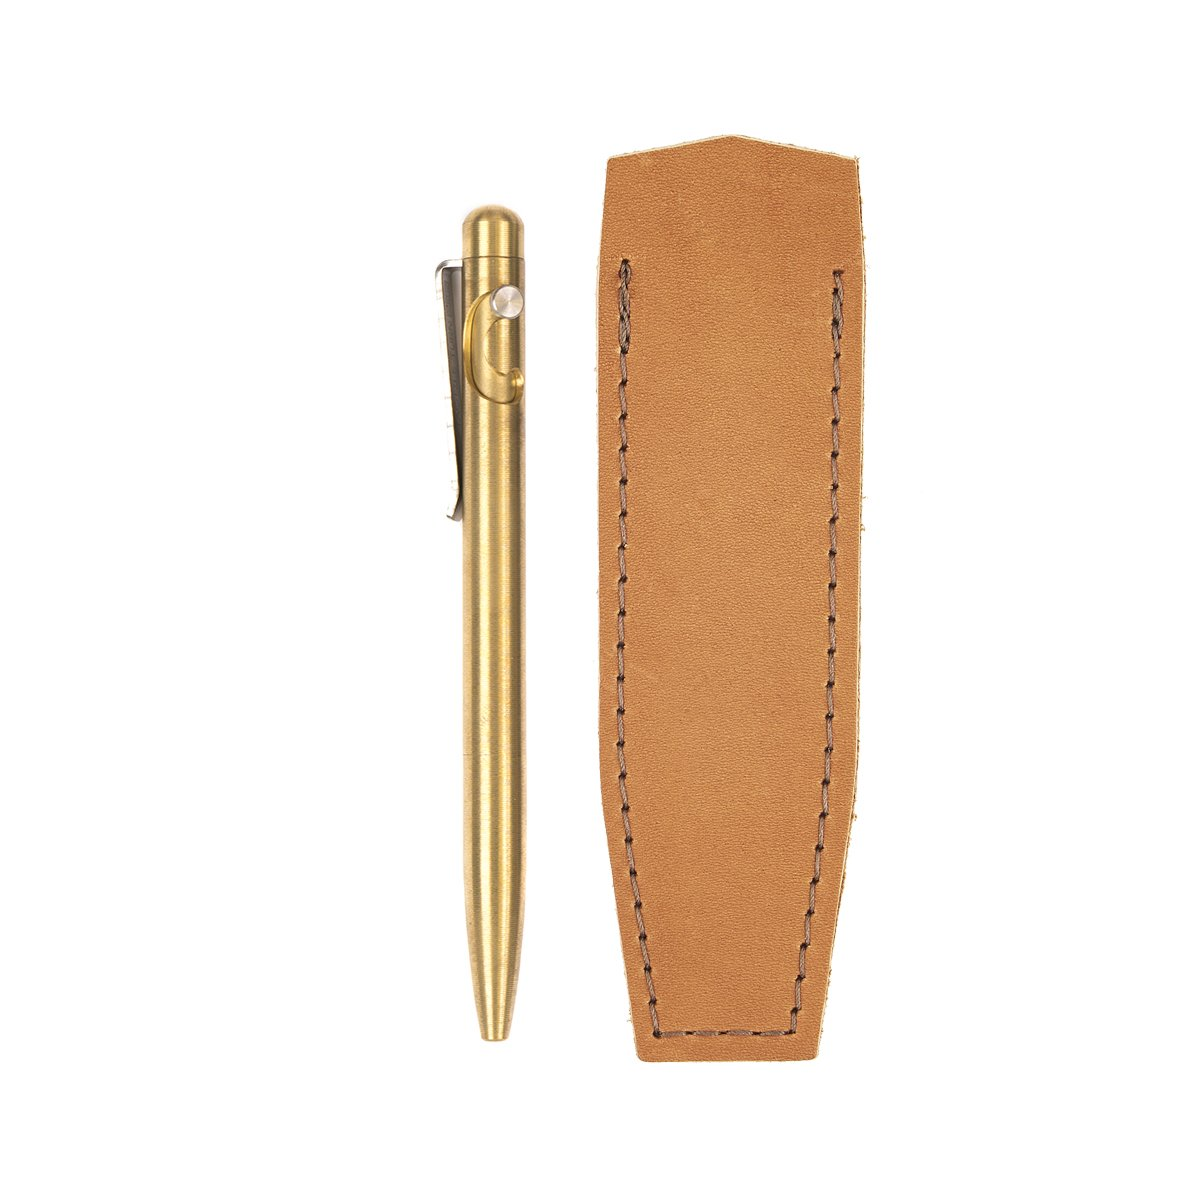 Glider Bolt-Action Pen - Brass